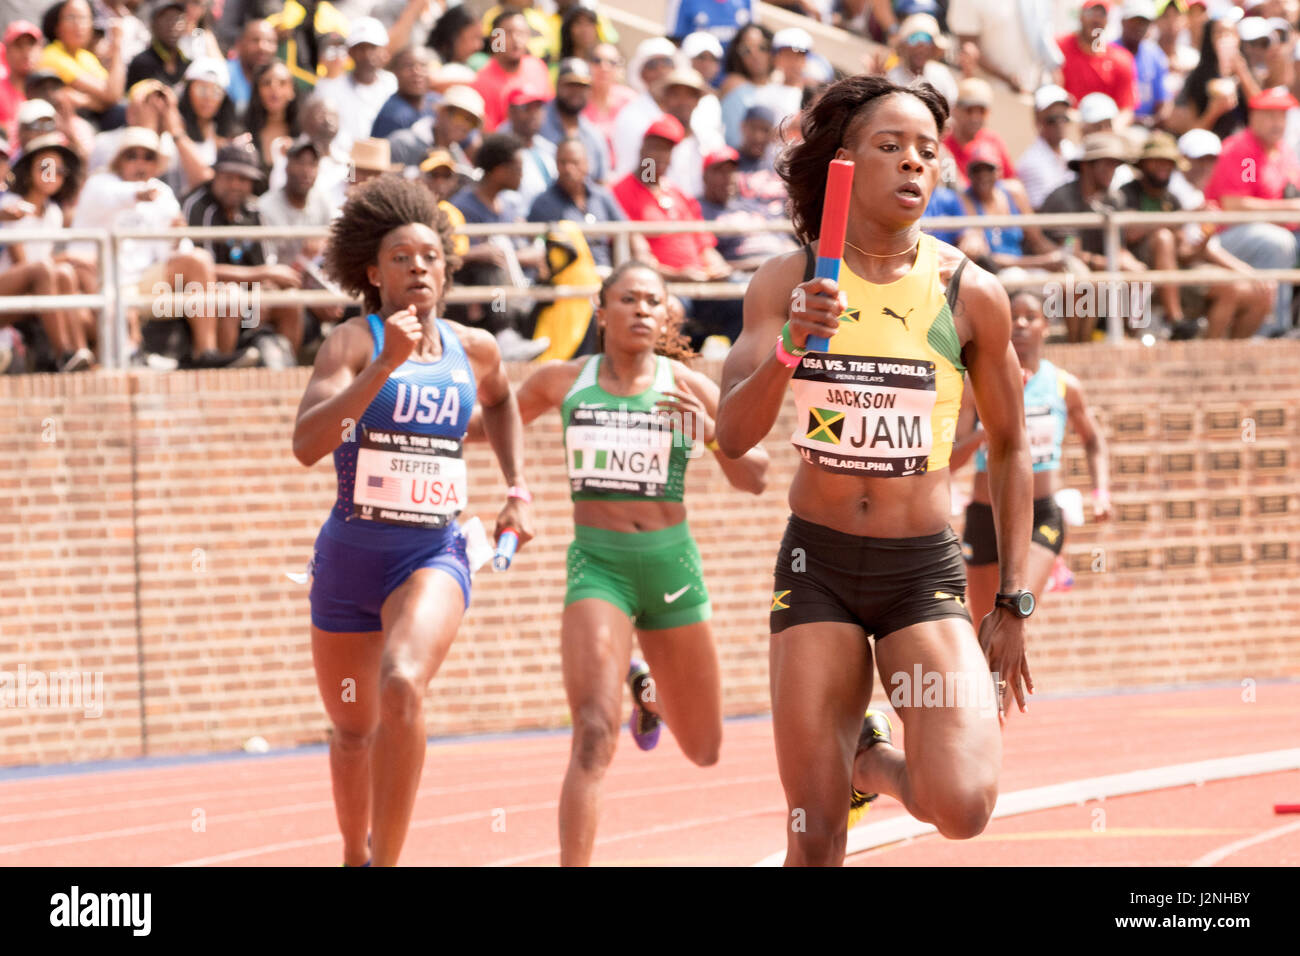 Philadelphia, Pennsylvania, USA. 29th Apr, 2017. JAIDE STEPTER, of Team USA, and SHERICKA JACKSON of Jamaica competing - Stock Image